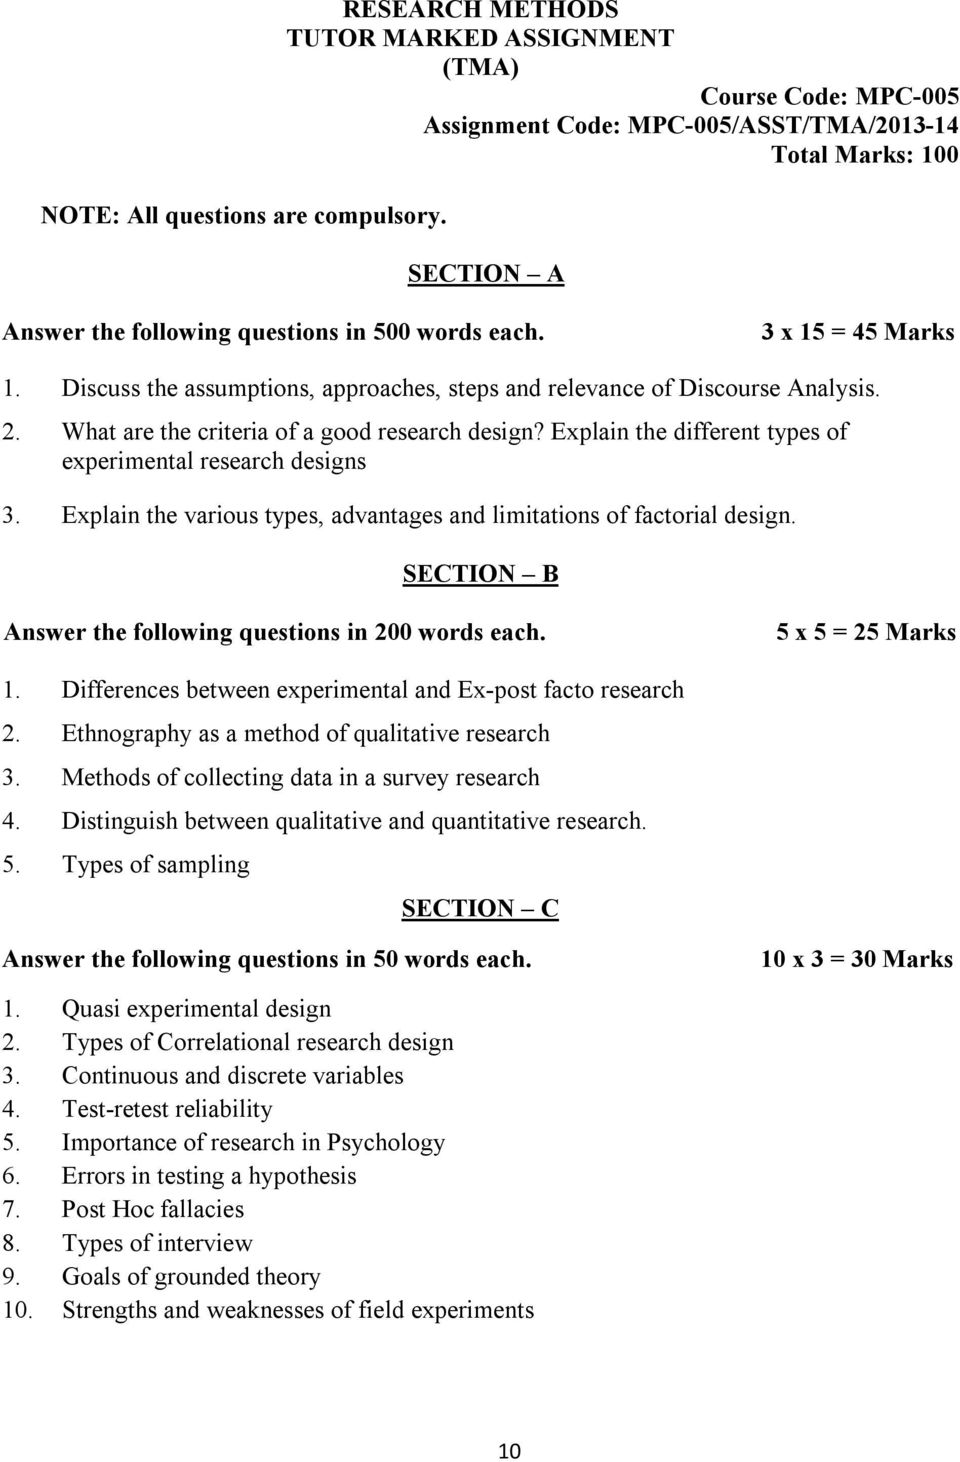 m a psychology first year courses mpc assignments for  3 x 15 45 marks 1 discuss the assumptions approaches steps and